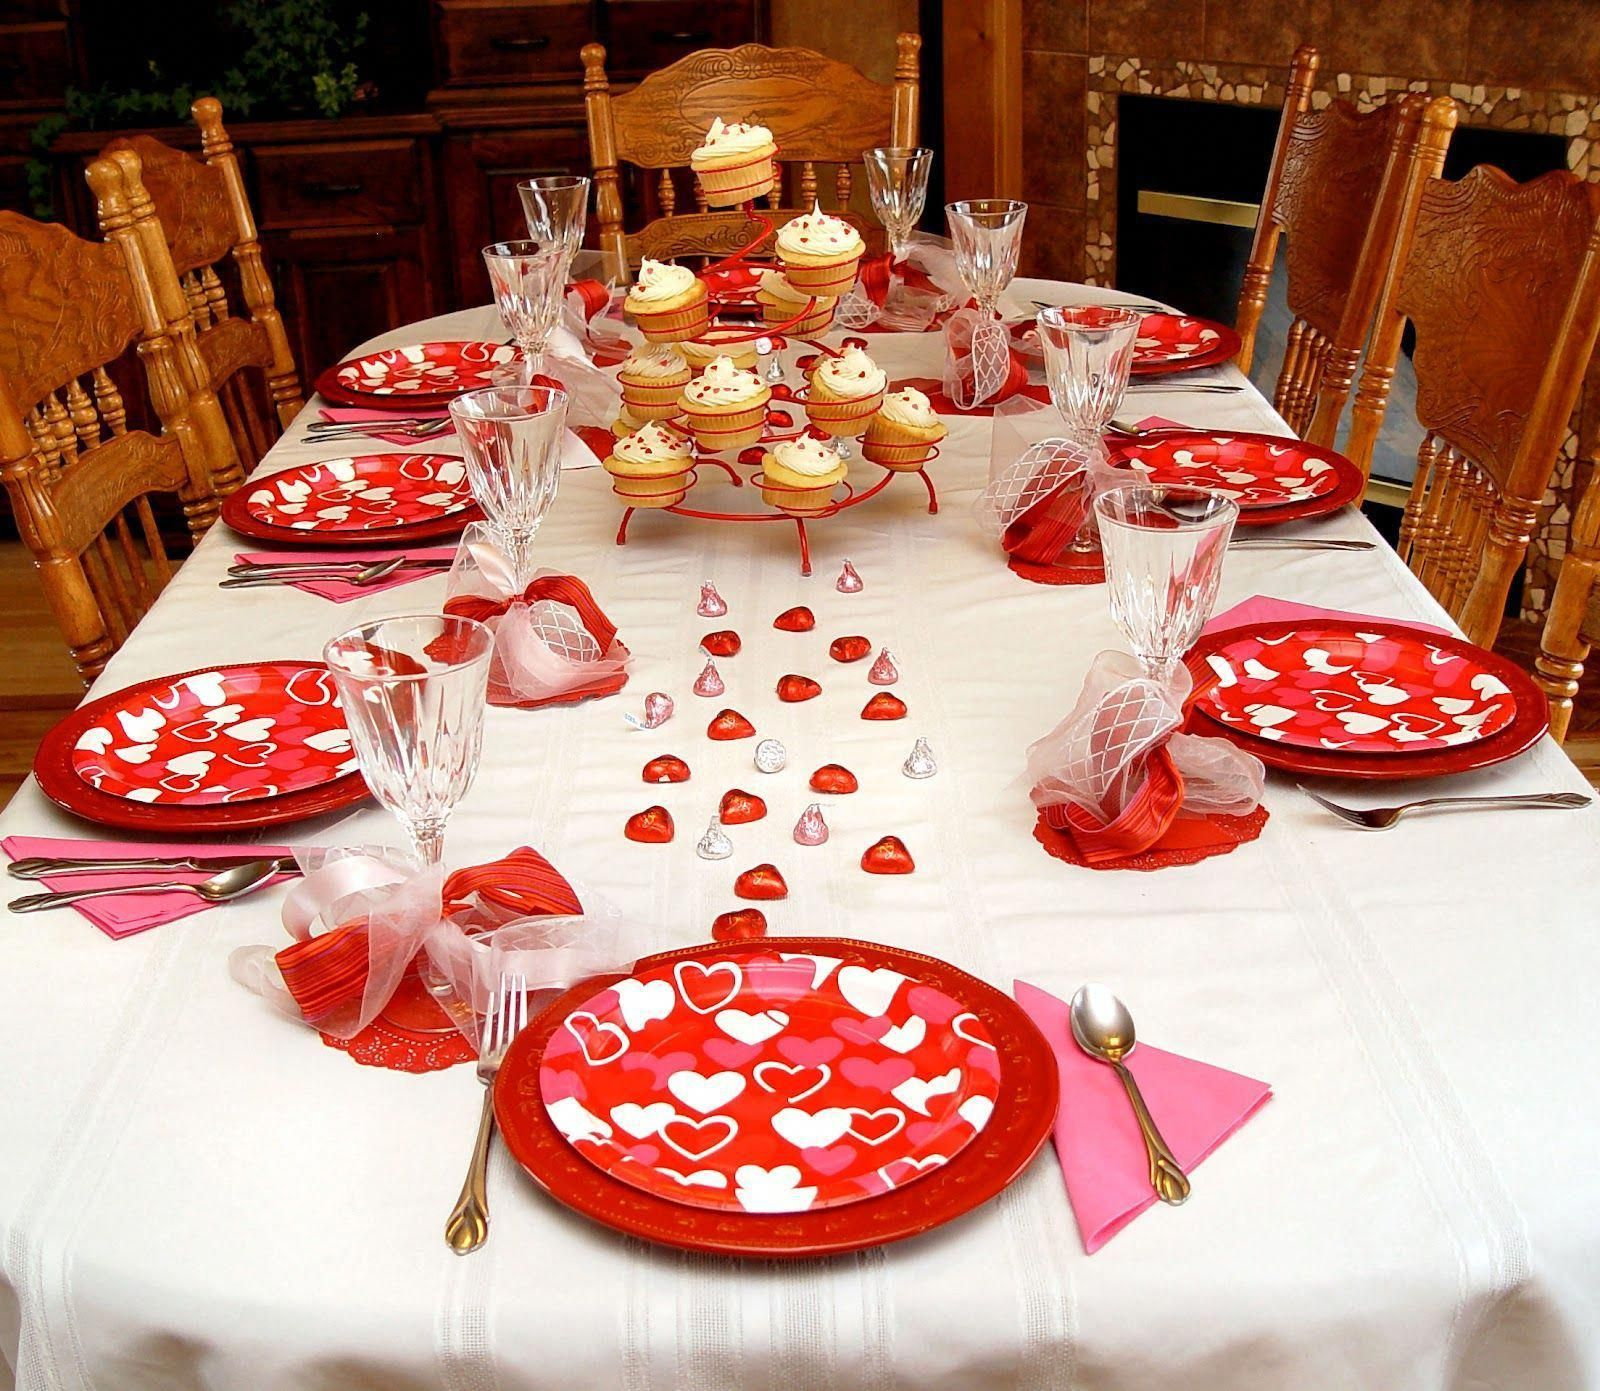 45 Dining Table Decor For Valentine S Day Dinner